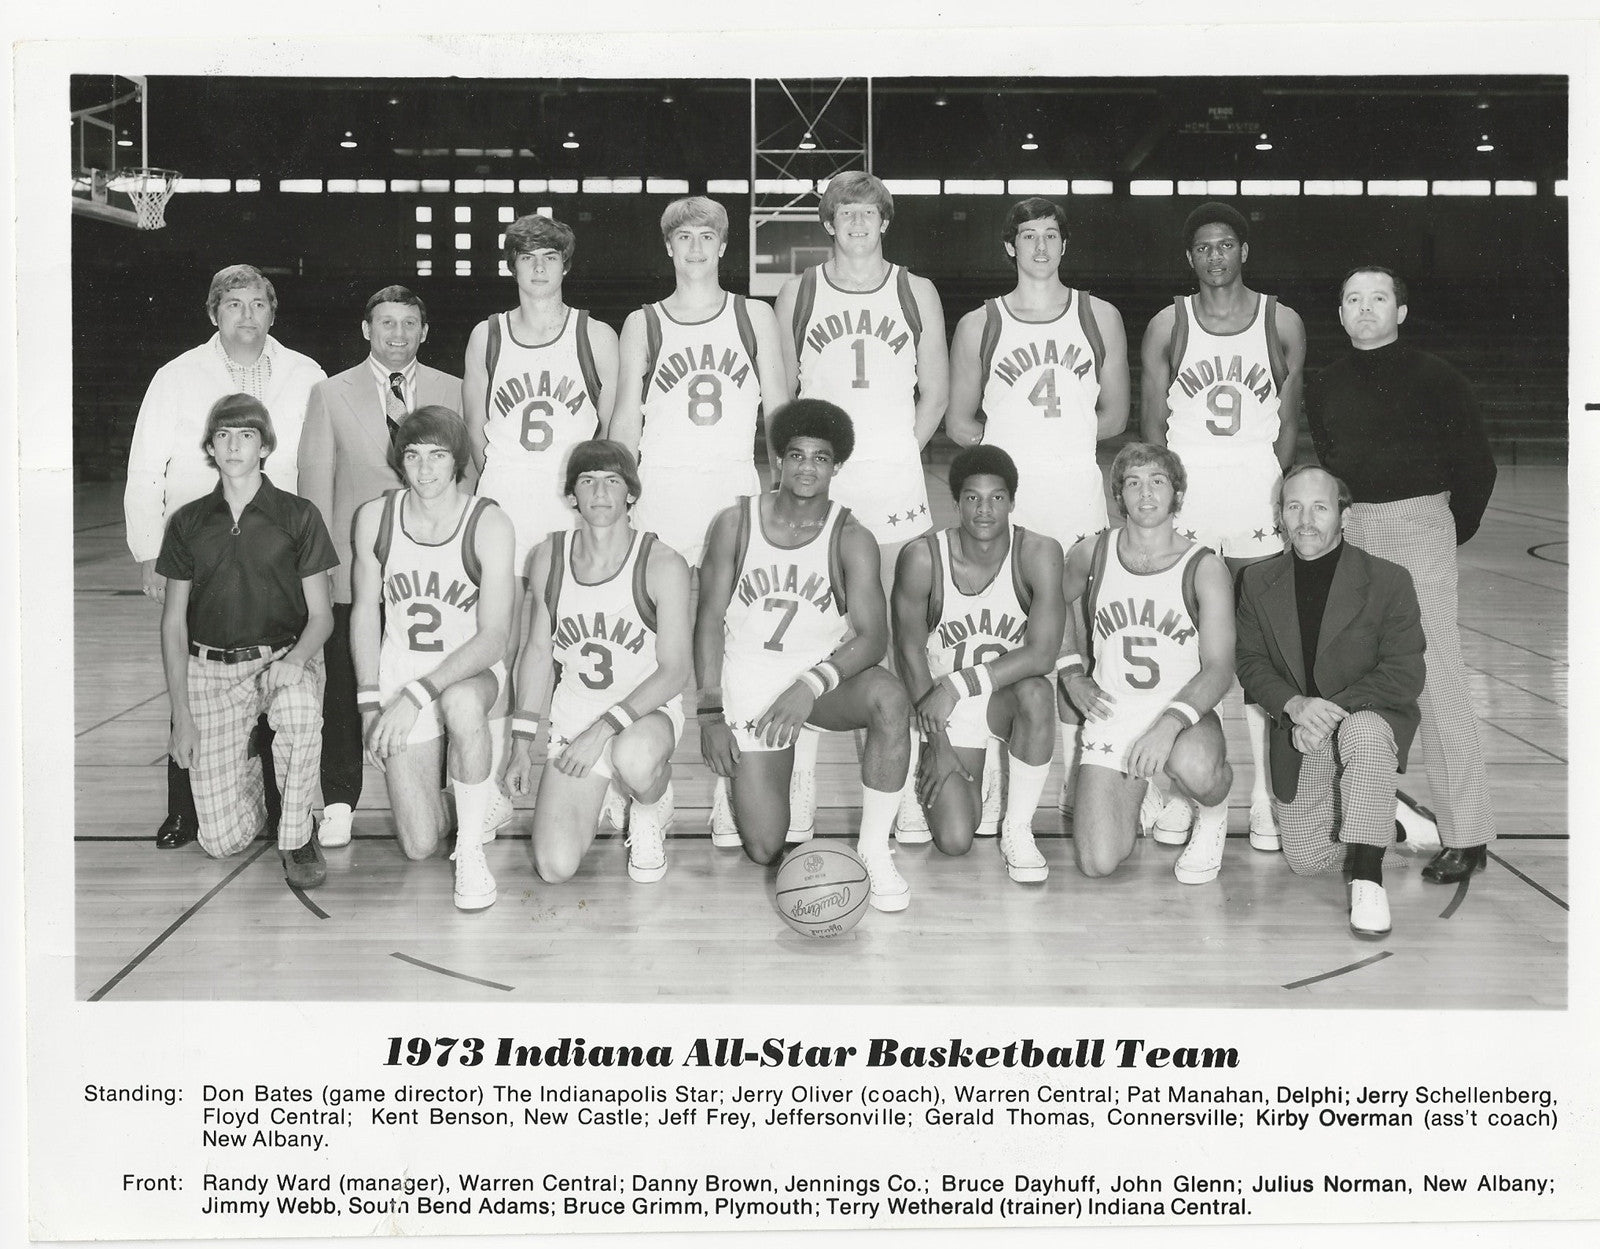 1973 Indiana High School Basketball Team 8x10 Photo, Kent Benson - Vintage Indy Sports